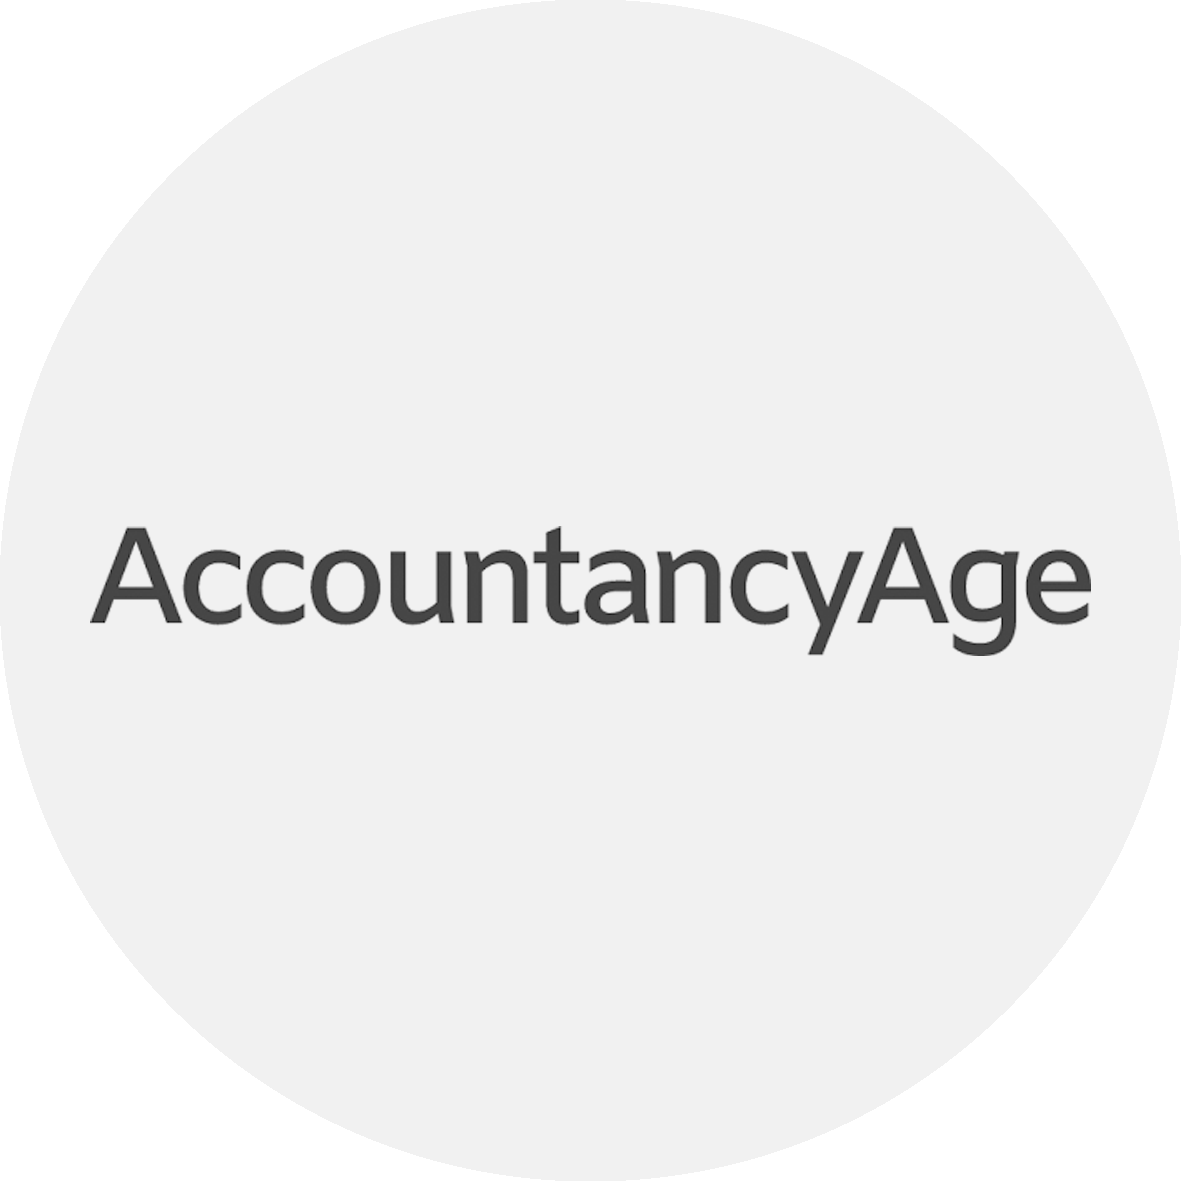 AccountancyAge | Top 50 Women in Finance 2019